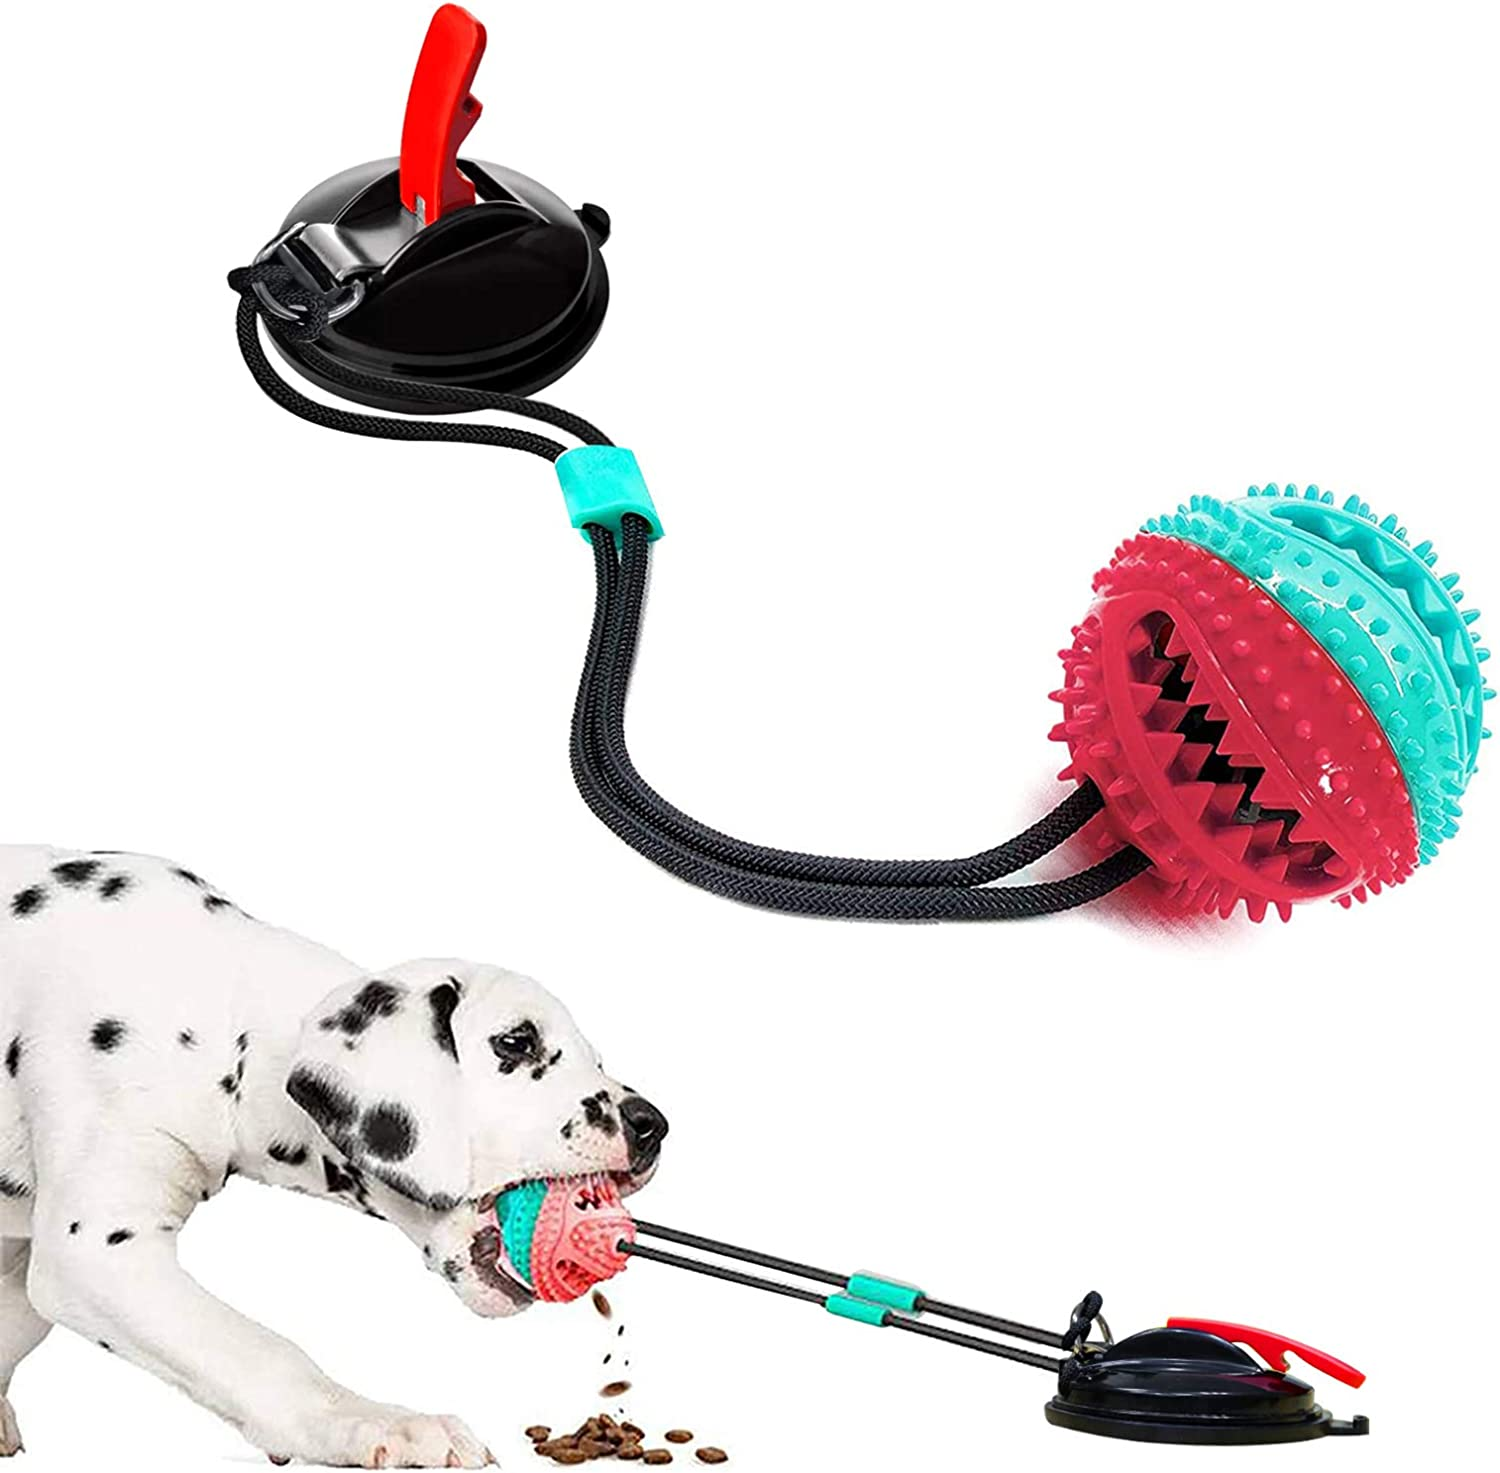 Upgrade Suction Cup Dog Chewing Toy, Dog Chew Toys for Aggressive Chewers, Dog Rope Ball Toys with Suction Cup for Puppies Large Dogs, Teeth Cleaning Interactive Pet Tug Toy for Boredom